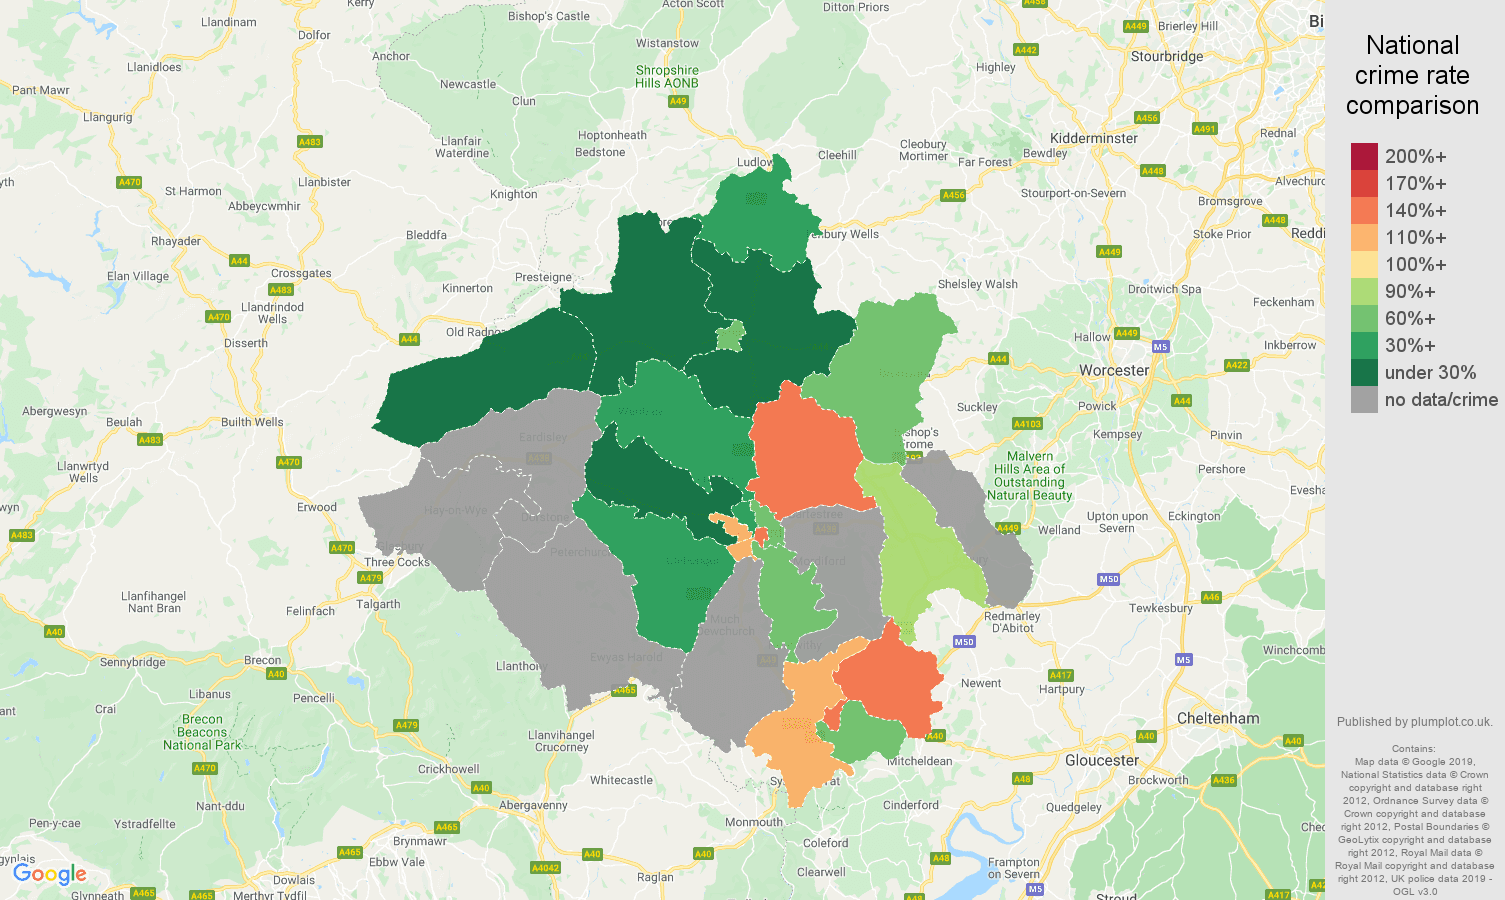 Herefordshire possession of weapons crime rate comparison map